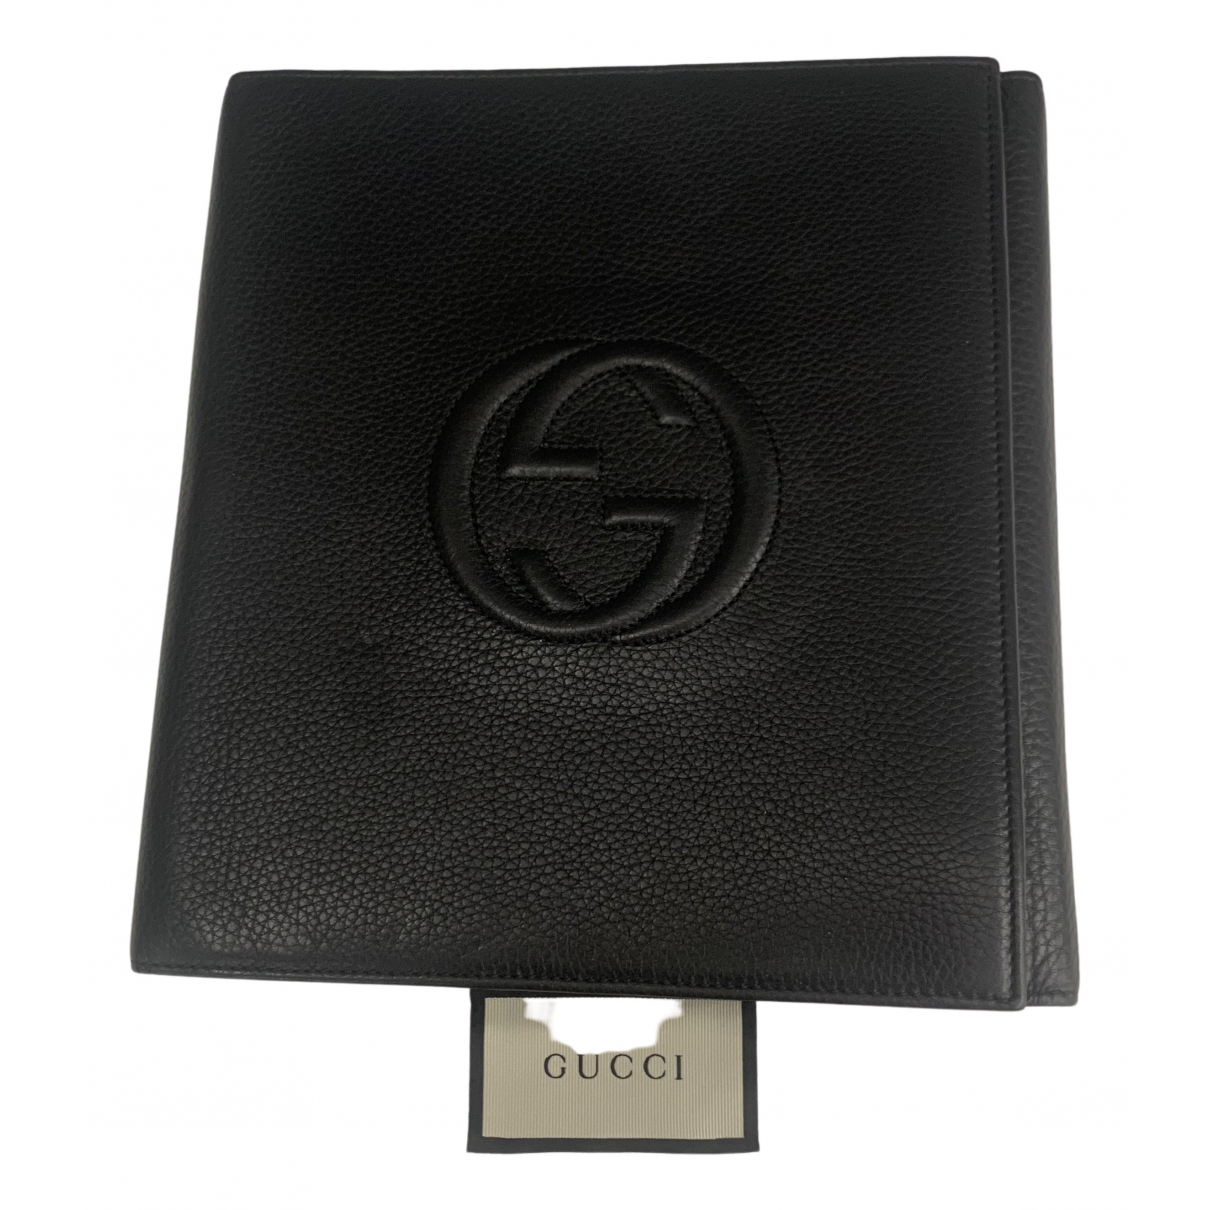 Gucci \N Black Leather Accessories for Life & Living \N